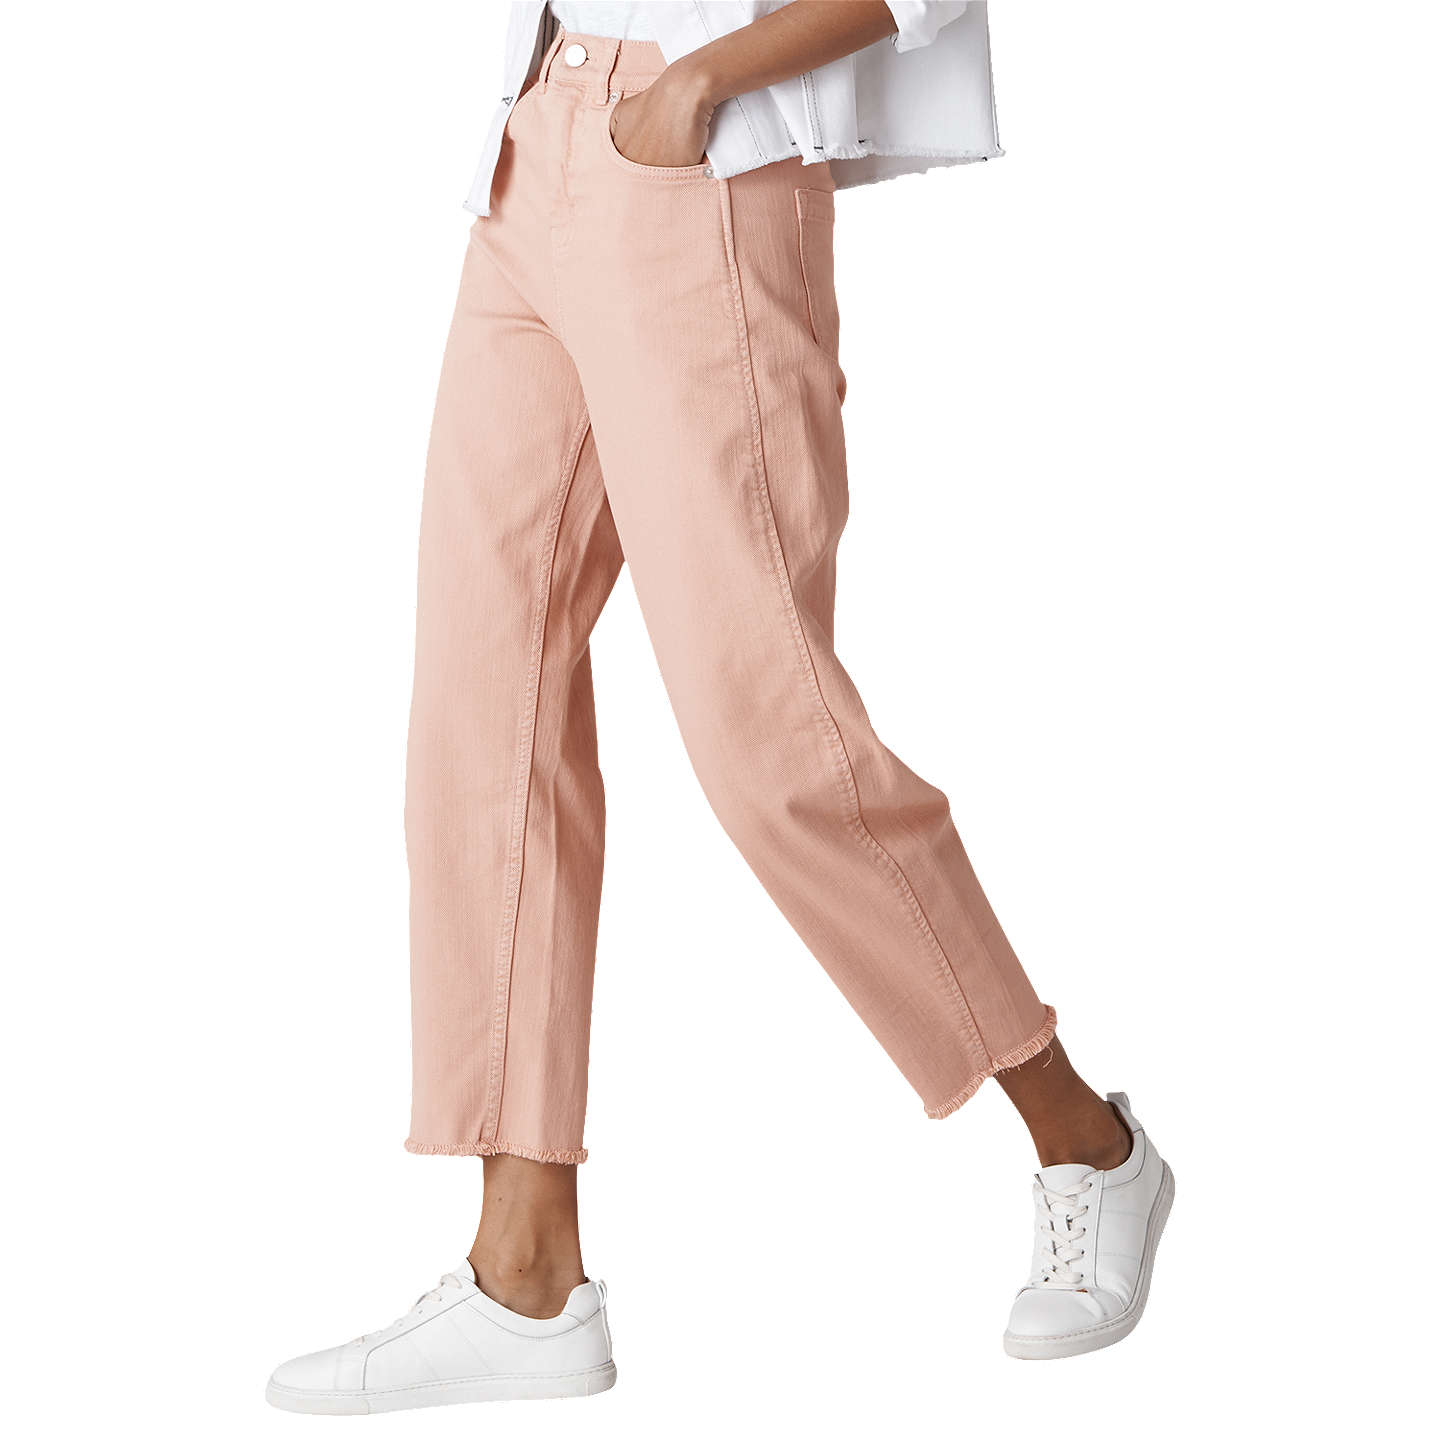 BuyWhistles High Waist Barrel Leg Jeans, Pale Pink, 26 Online at johnlewis.com